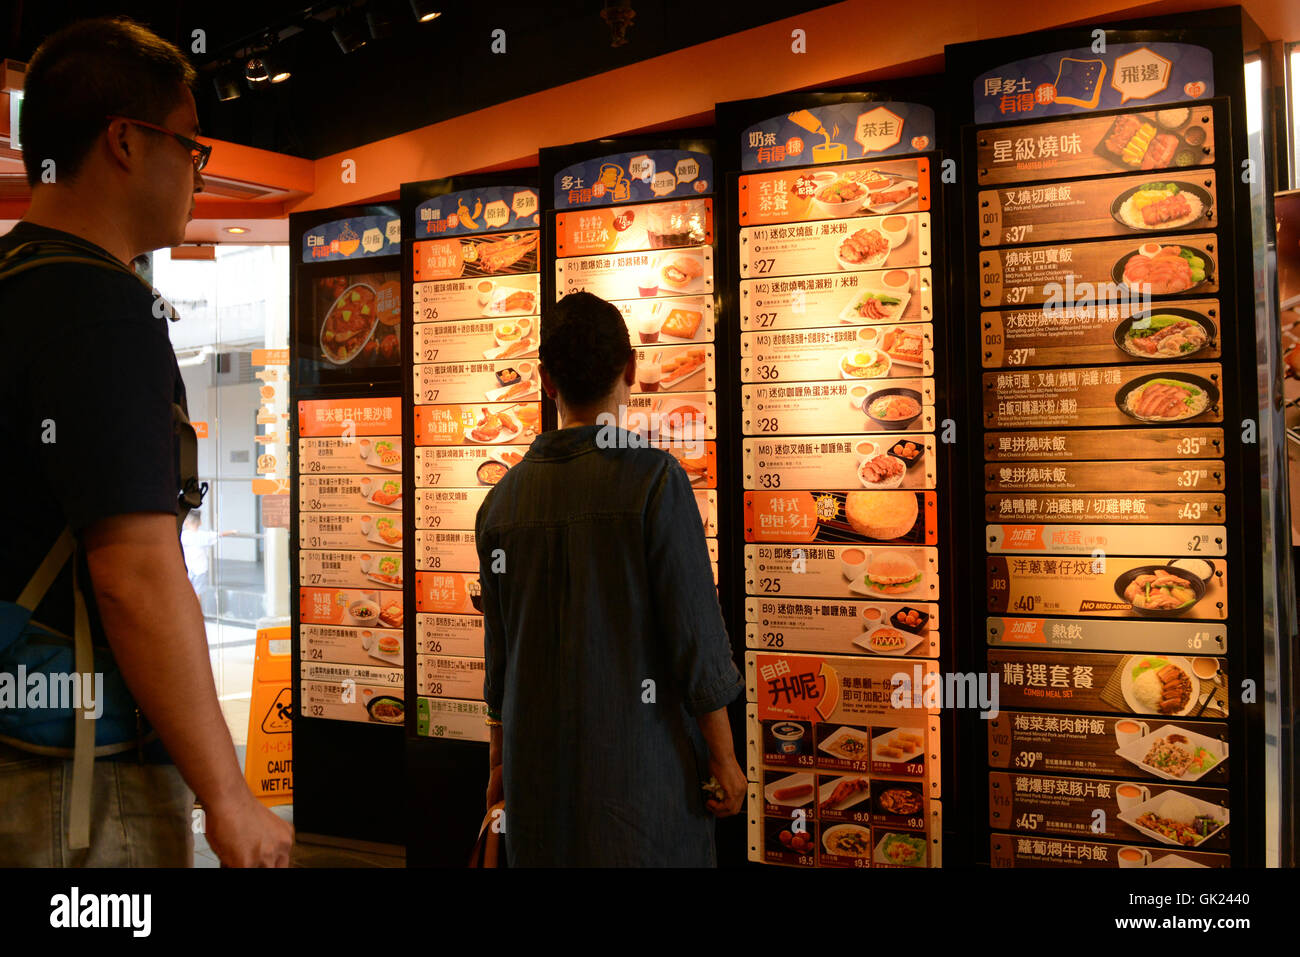 Hong Kong style fast food restaurants. The menu is displayed on a wall at the entrance, customers order at the cashier. Stock Photo